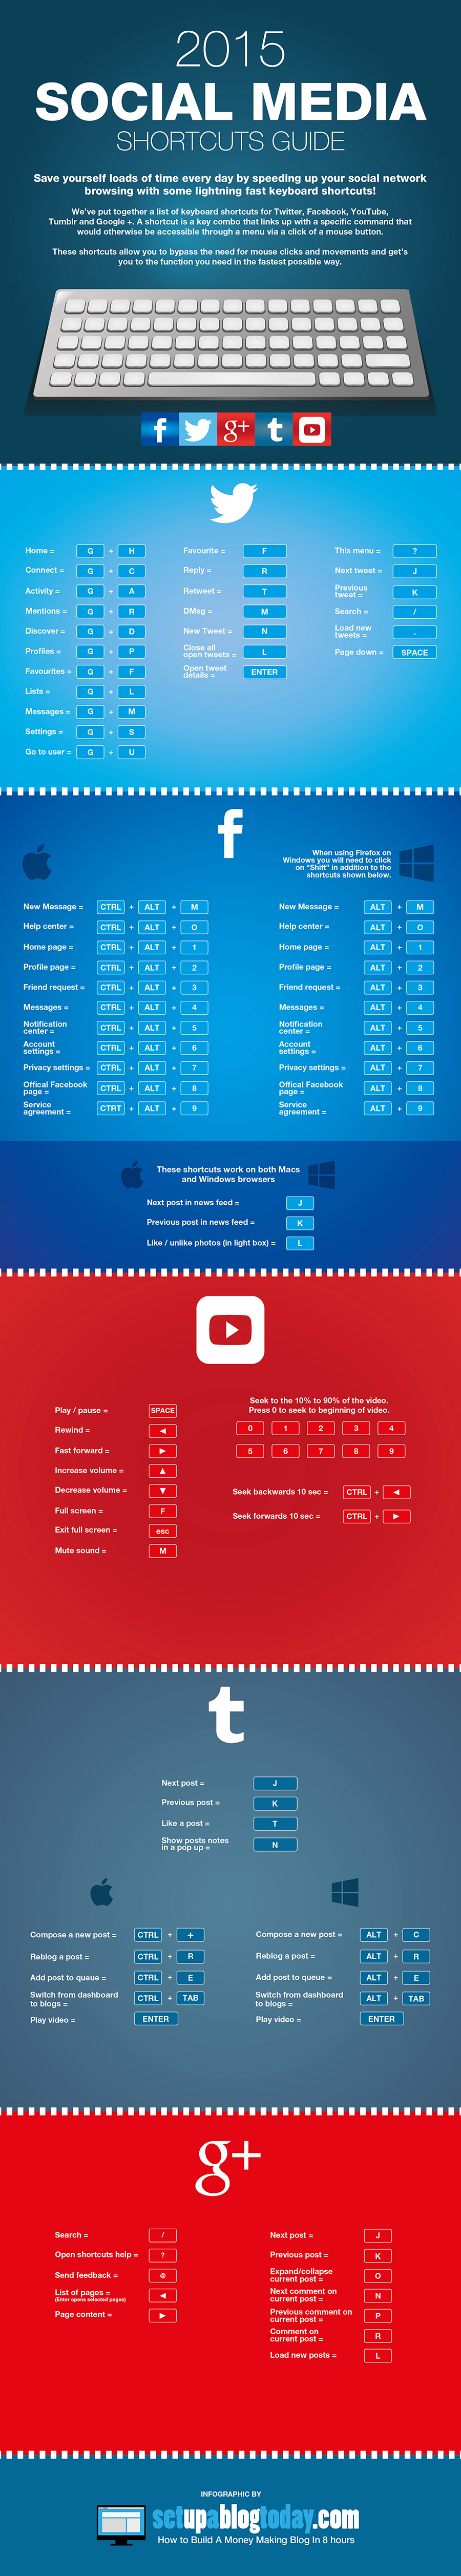 Cool Shortcuts For Twitter, Facebook and Youtube